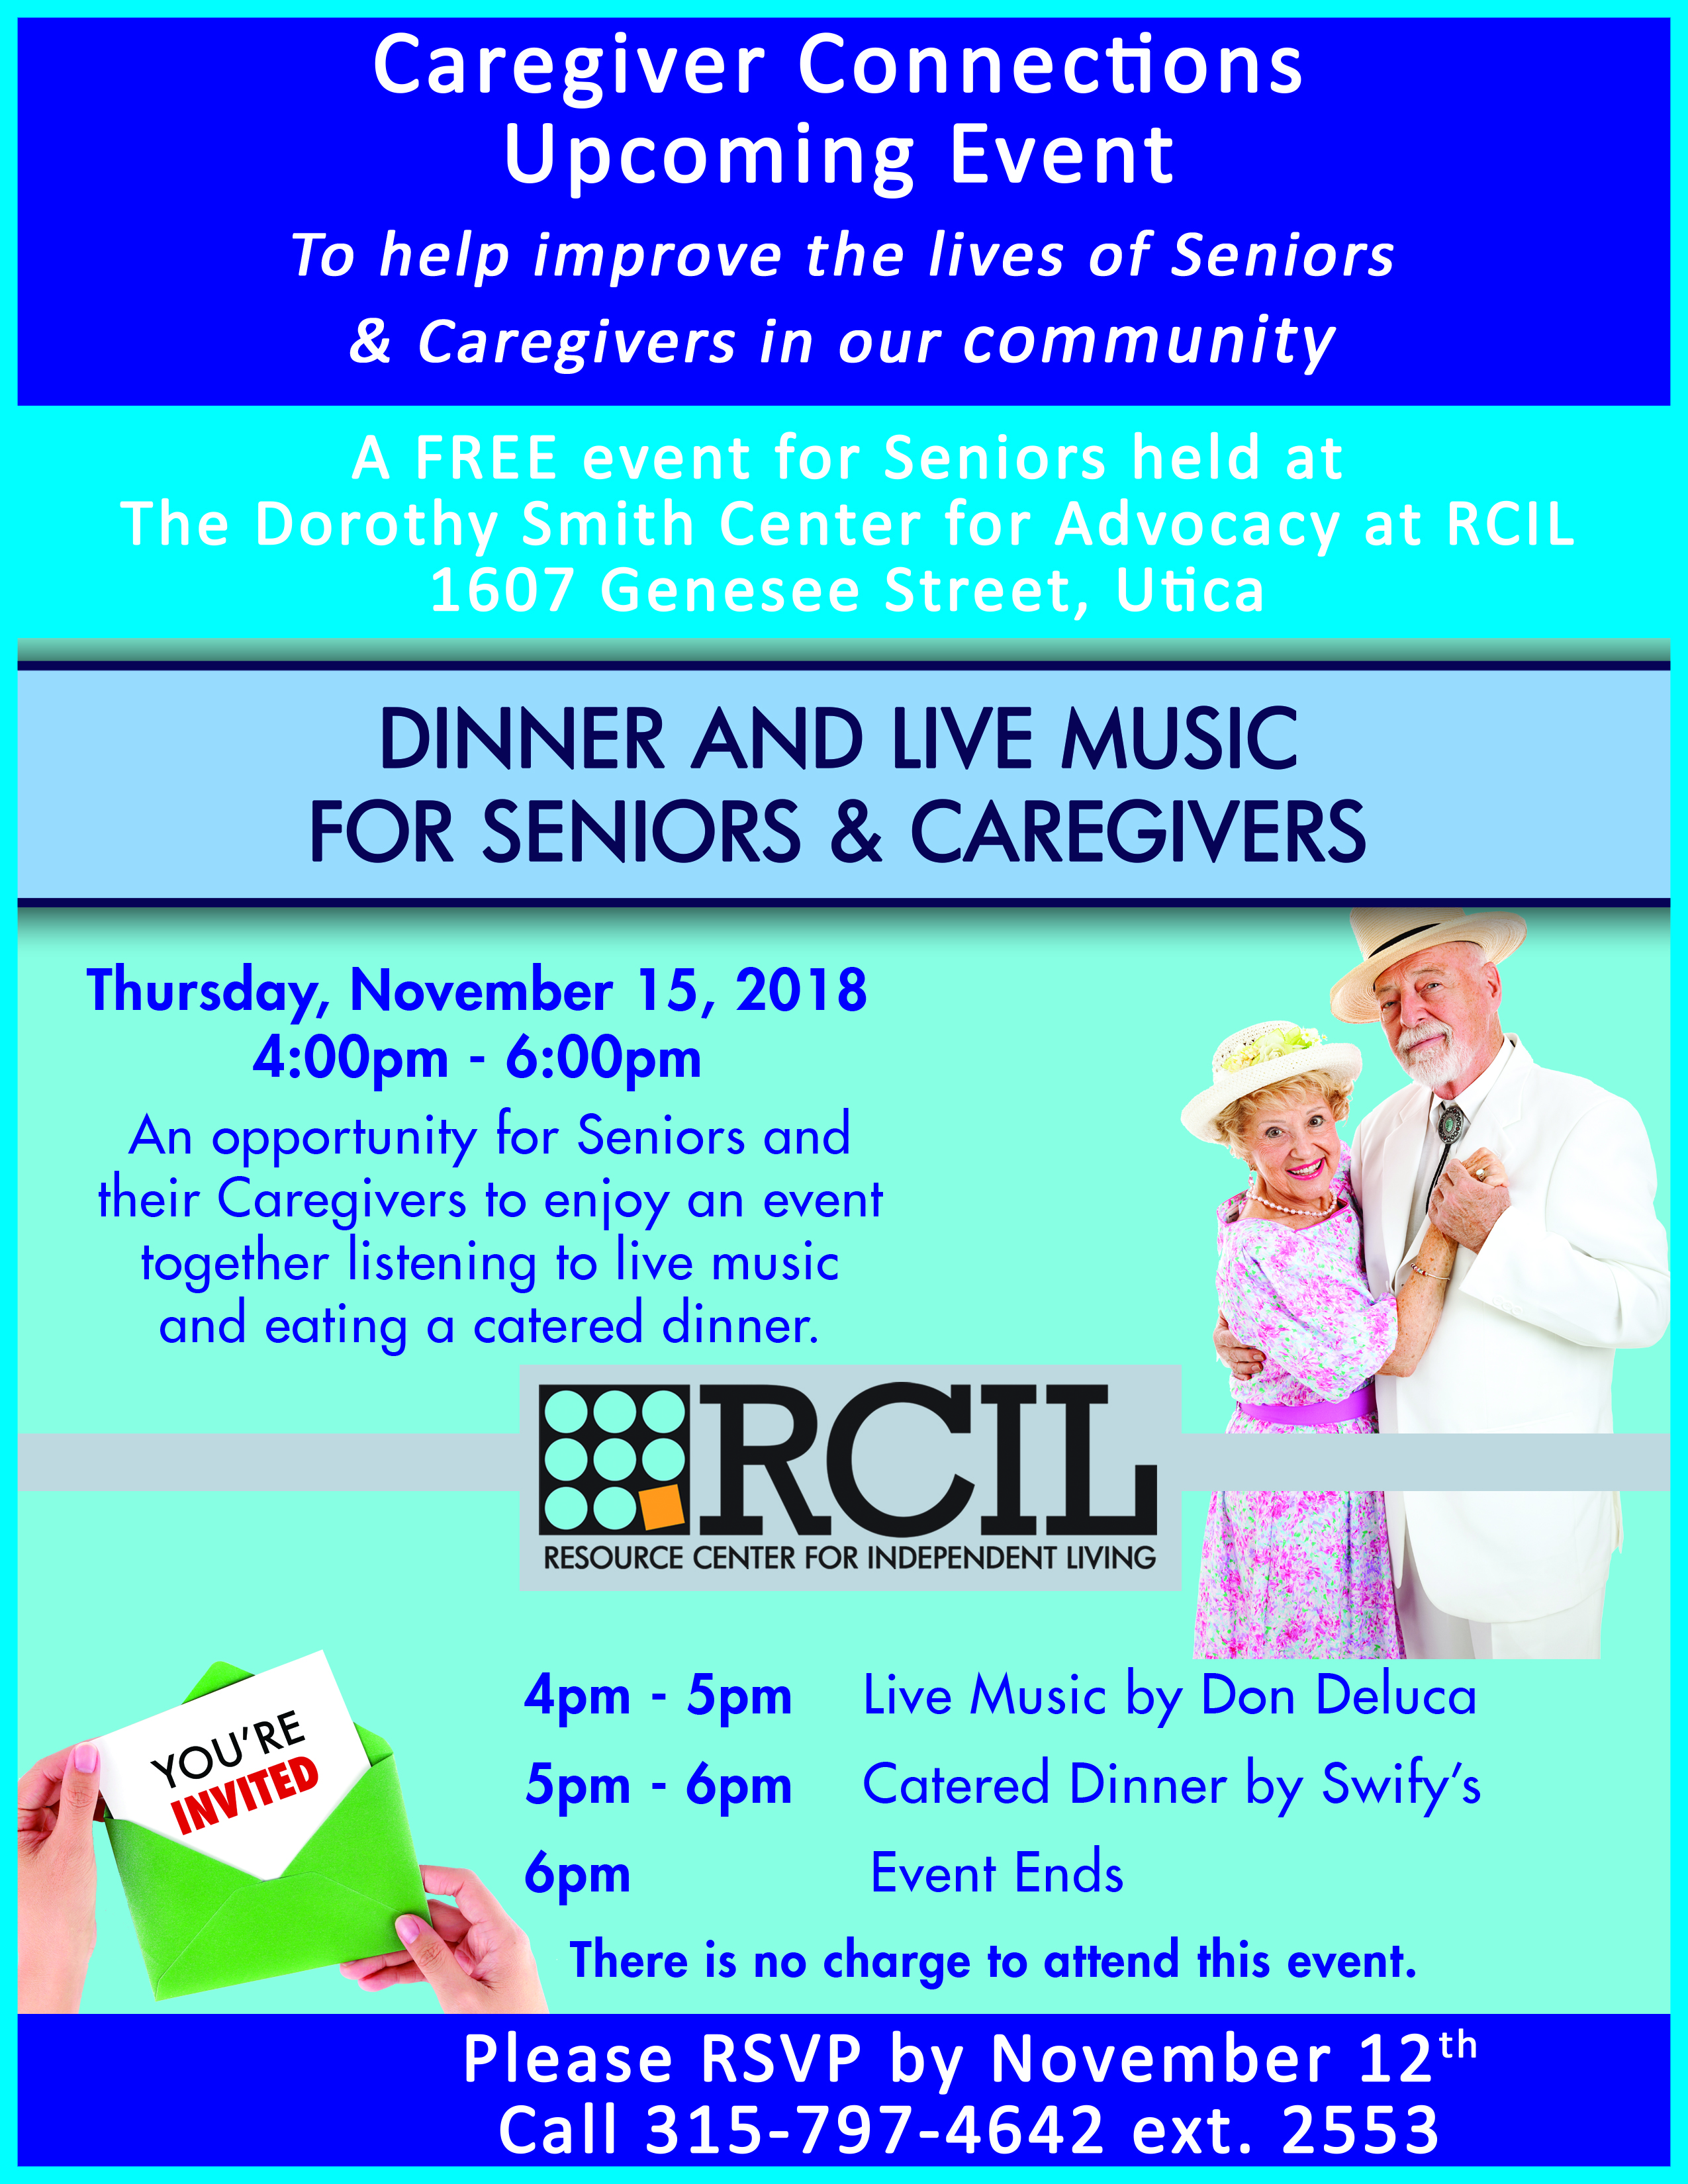 The Resource Center for Independent Living (RCIL) invites local Seniors and their Caregivers to join us for Dinner and Live Music on Thursday, November 15th from 4pm-6pm at the Dorothy Smith Center for Advocacy at RCIL (1607 Genesee Street in Utica). This event will provide an opportunity for Seniors and their Caregivers to get out of the house and enjoy an event together, where they will enjoy a catered dinner and live music by Don Deluca! This event is FREE! Please RSVP by November 12th by calling 315-797-4642 ext. 2553.